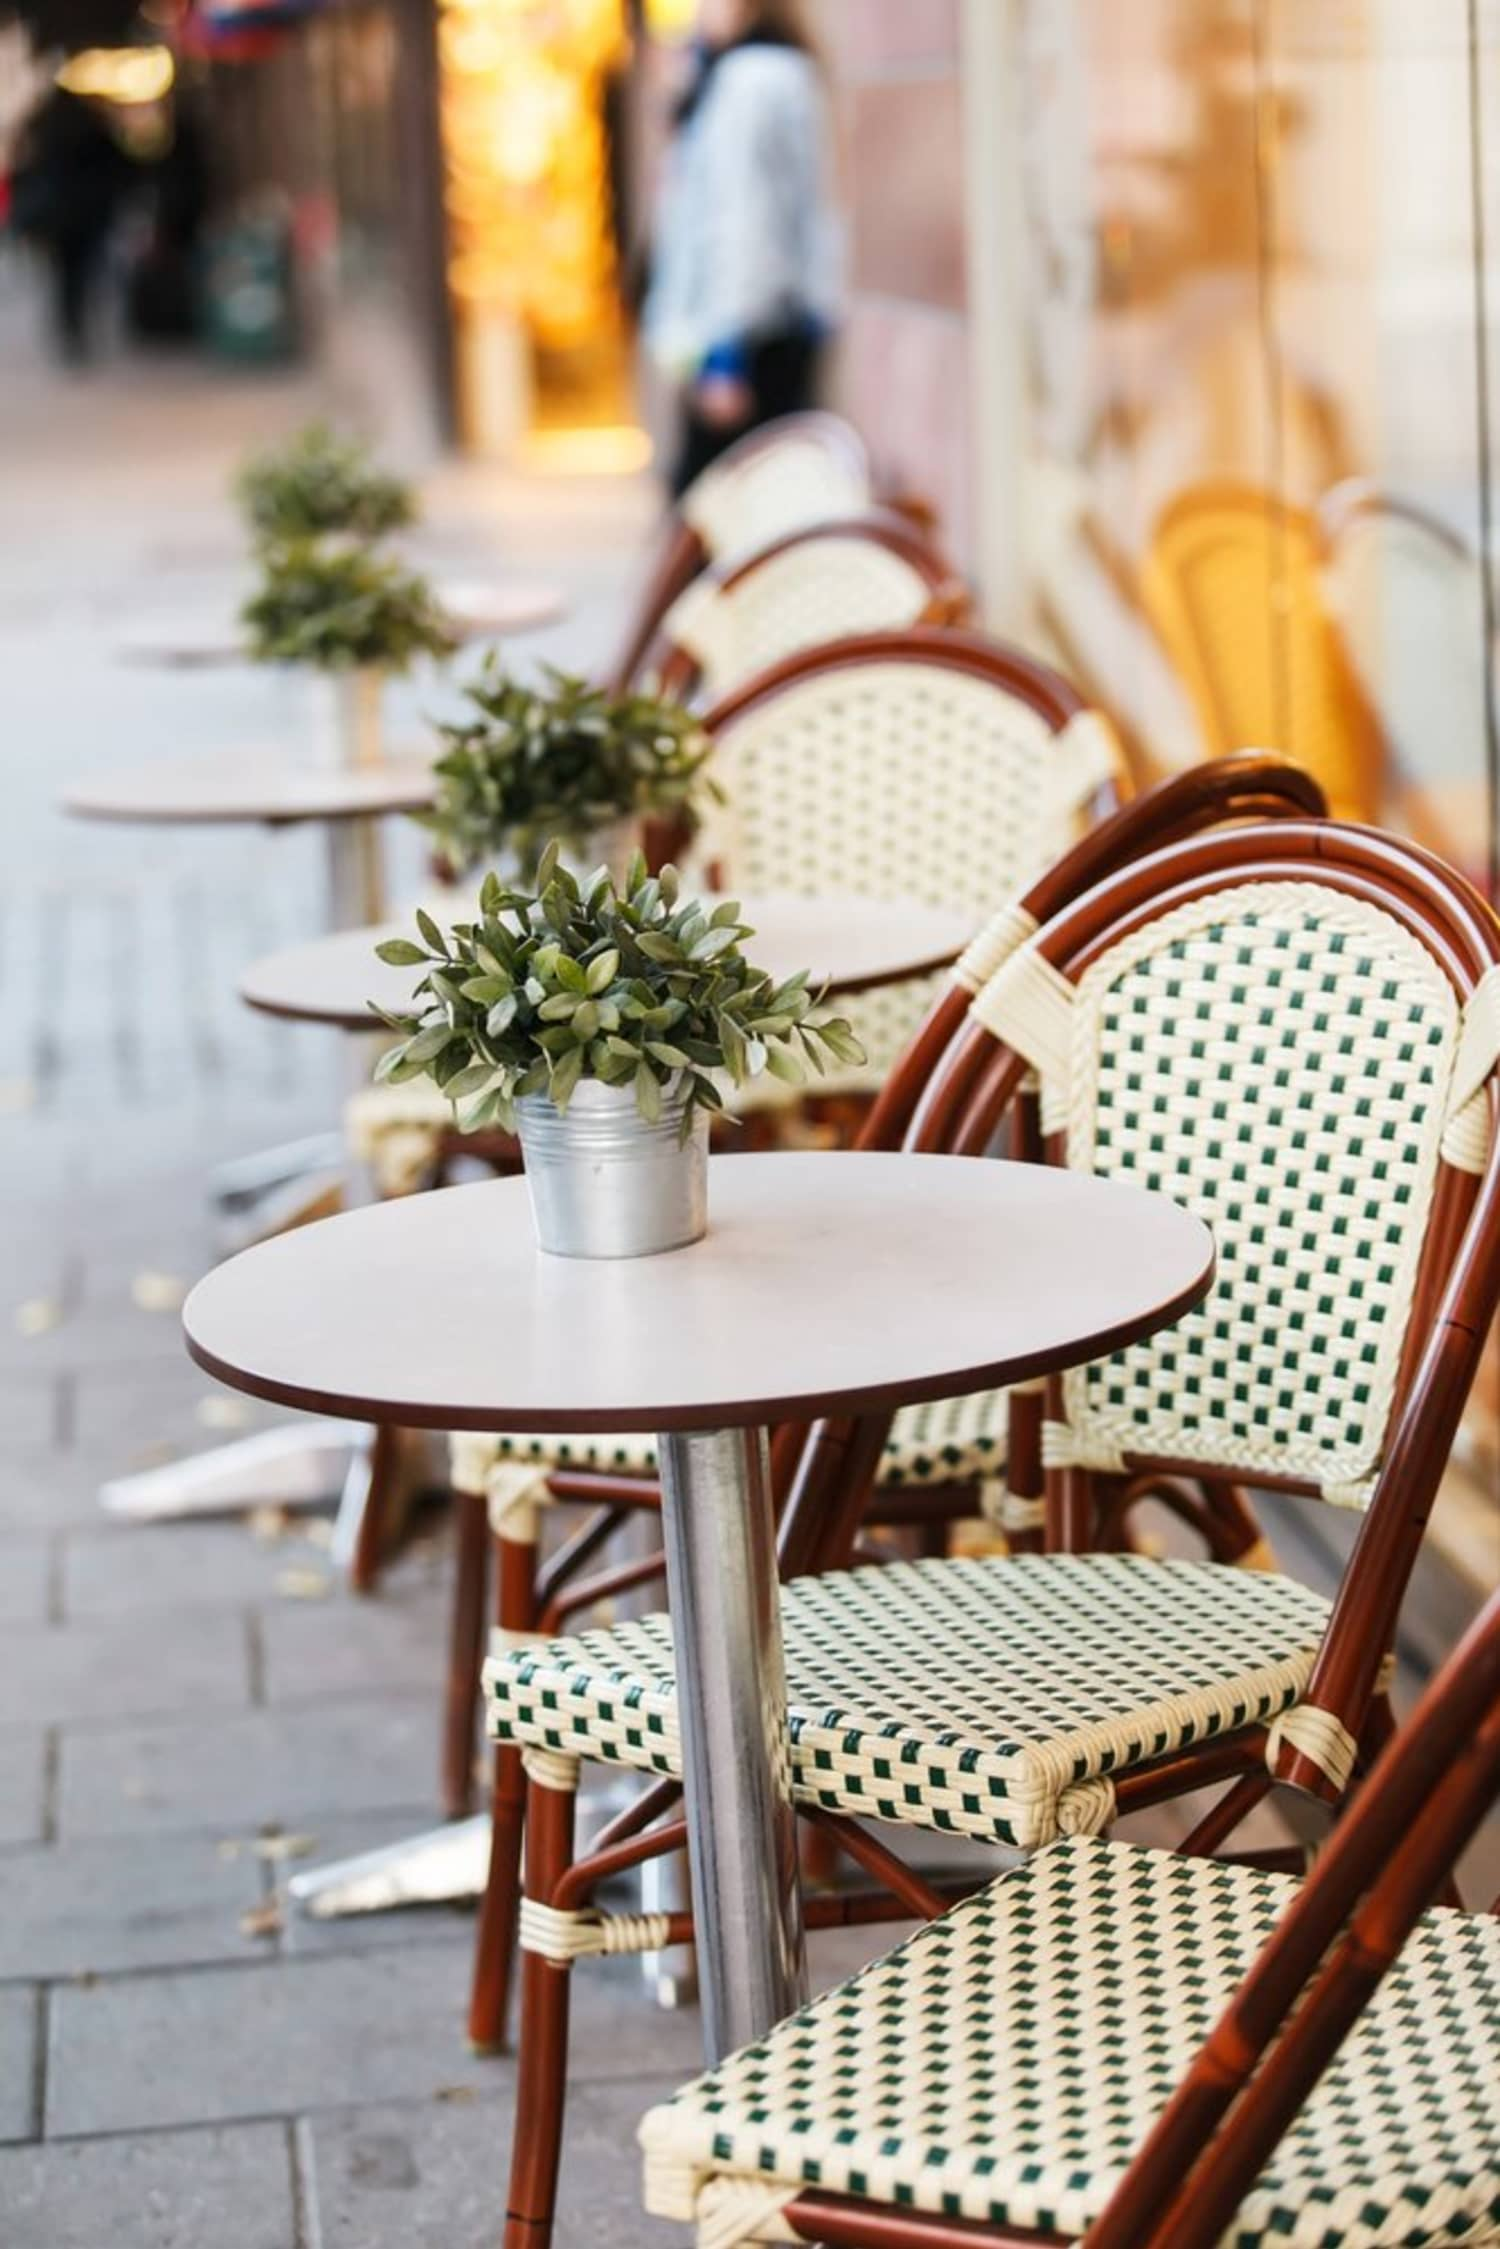 Where to Buy Inexpensive Outdoor Furniture | Apartment Therapy